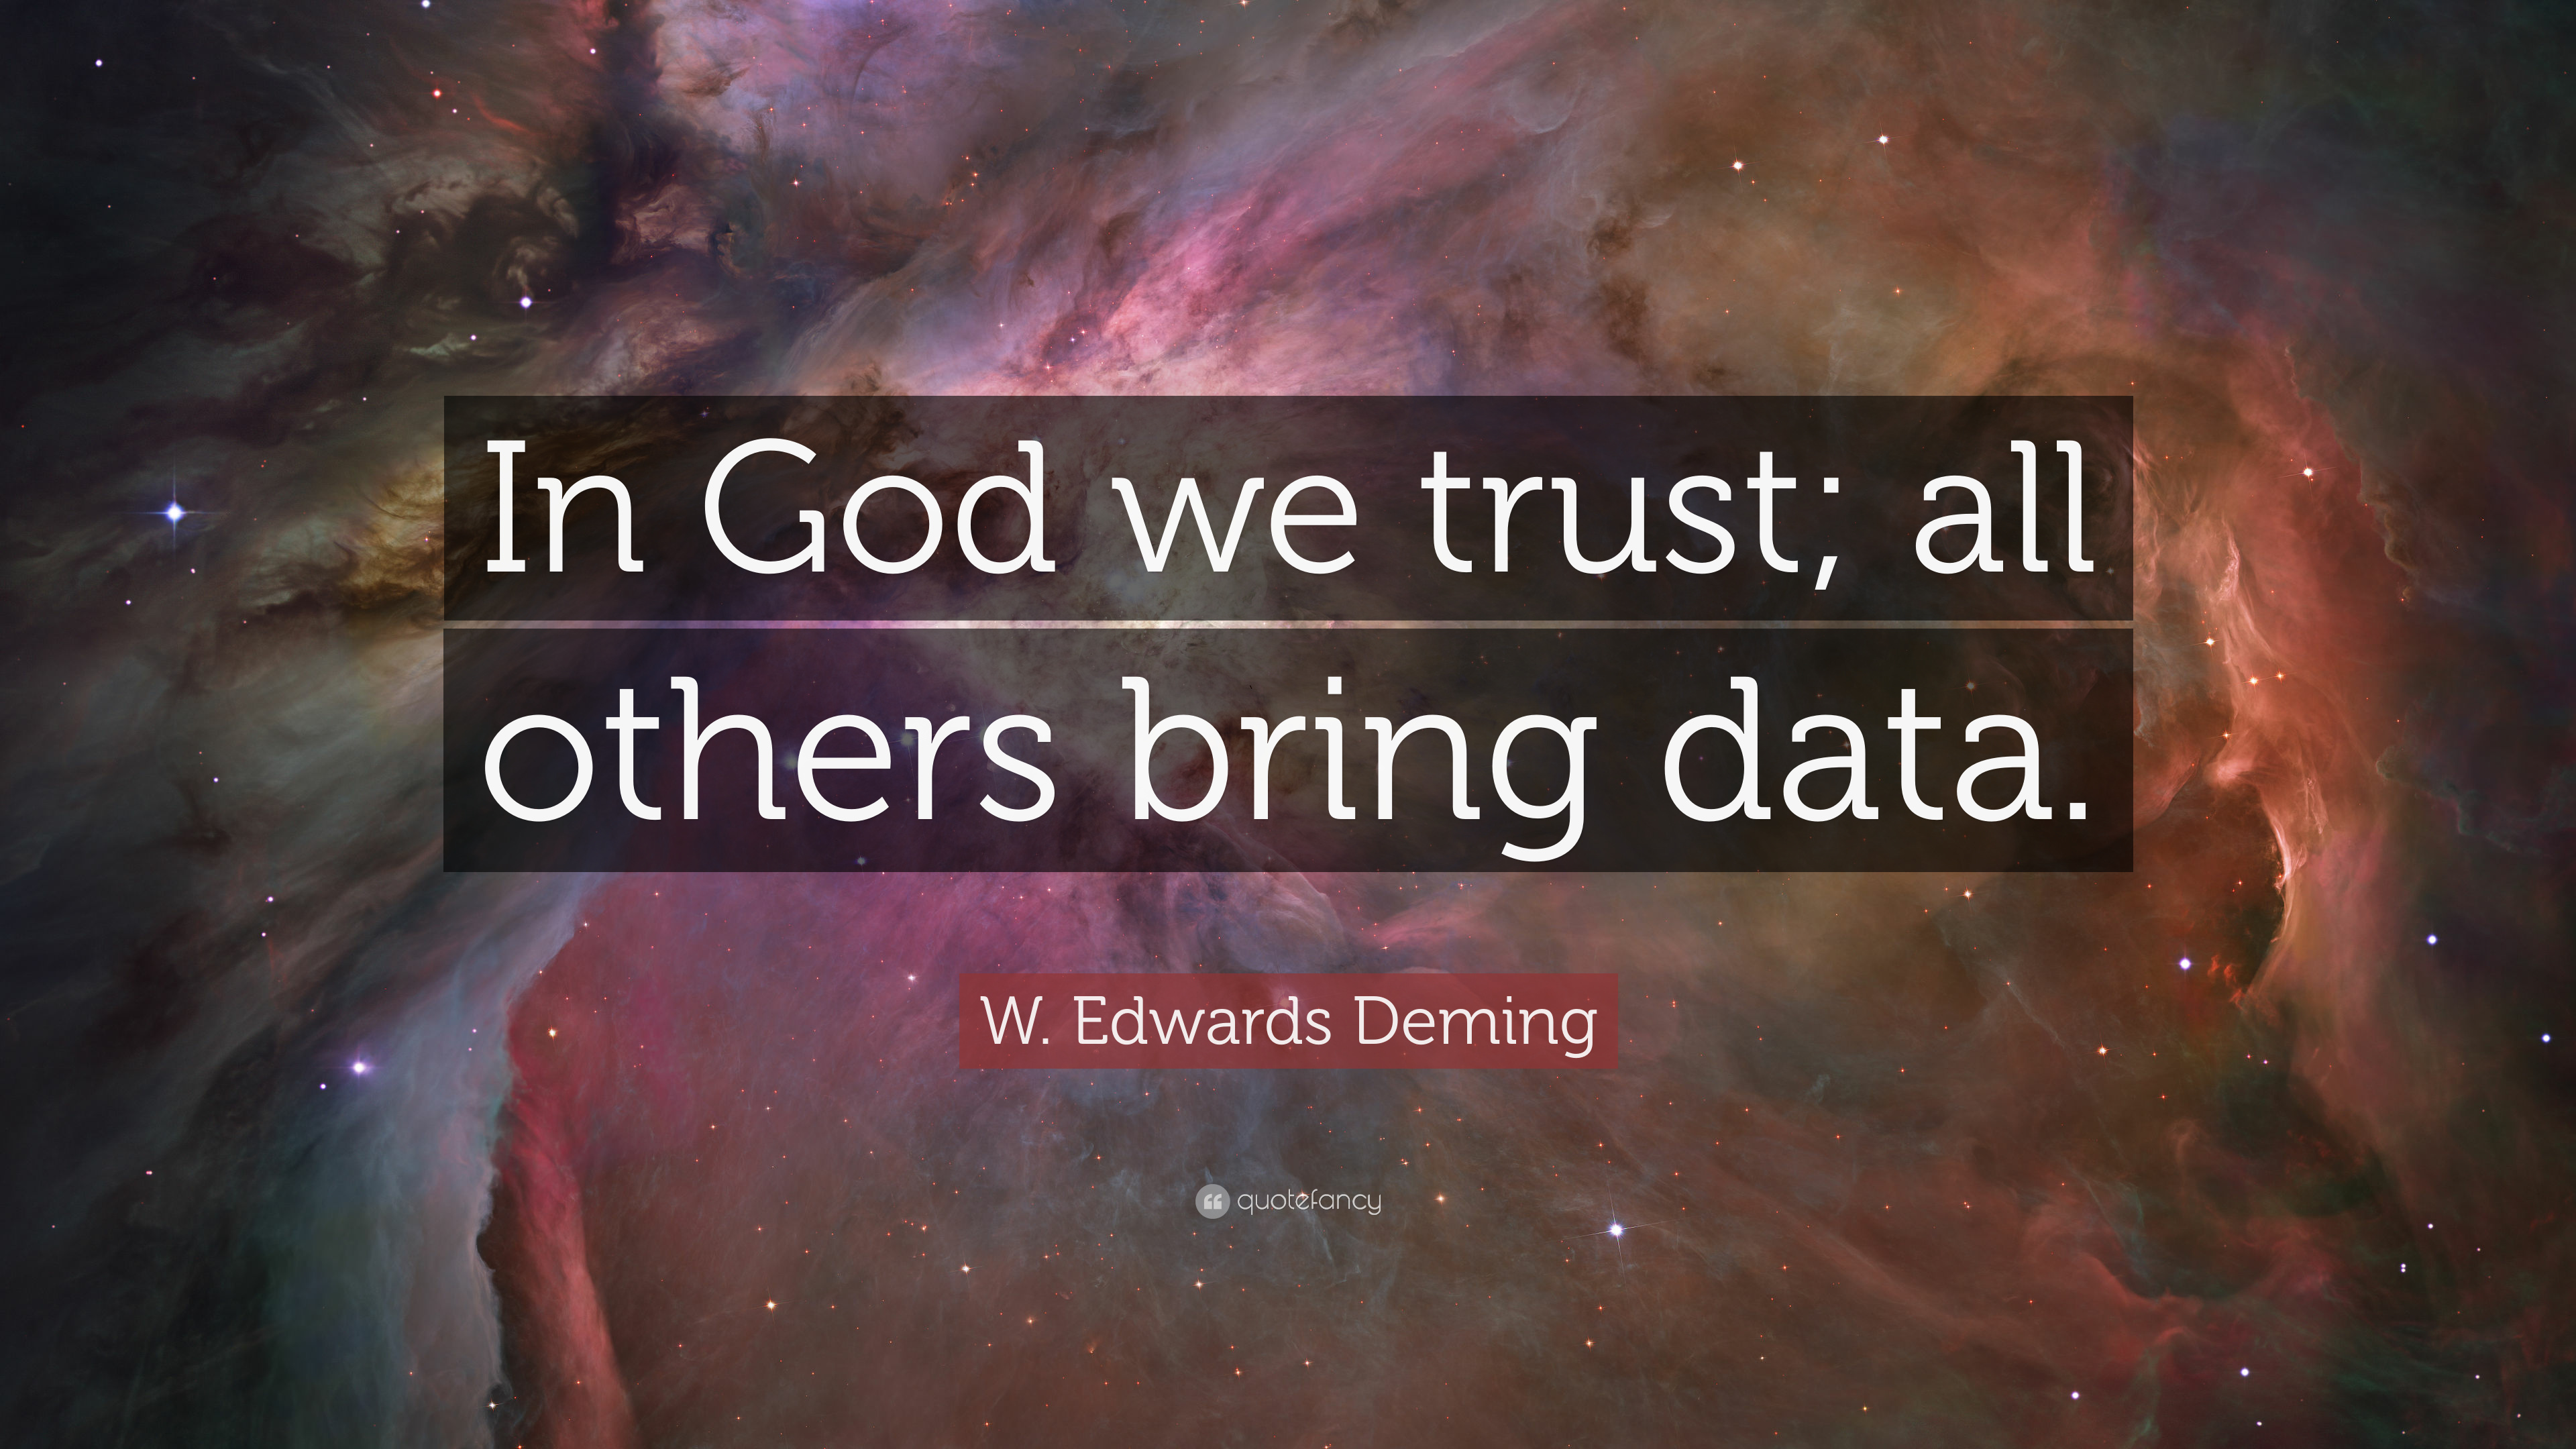 W Edwards Deming Quote In God We Trust All Others Bring Data